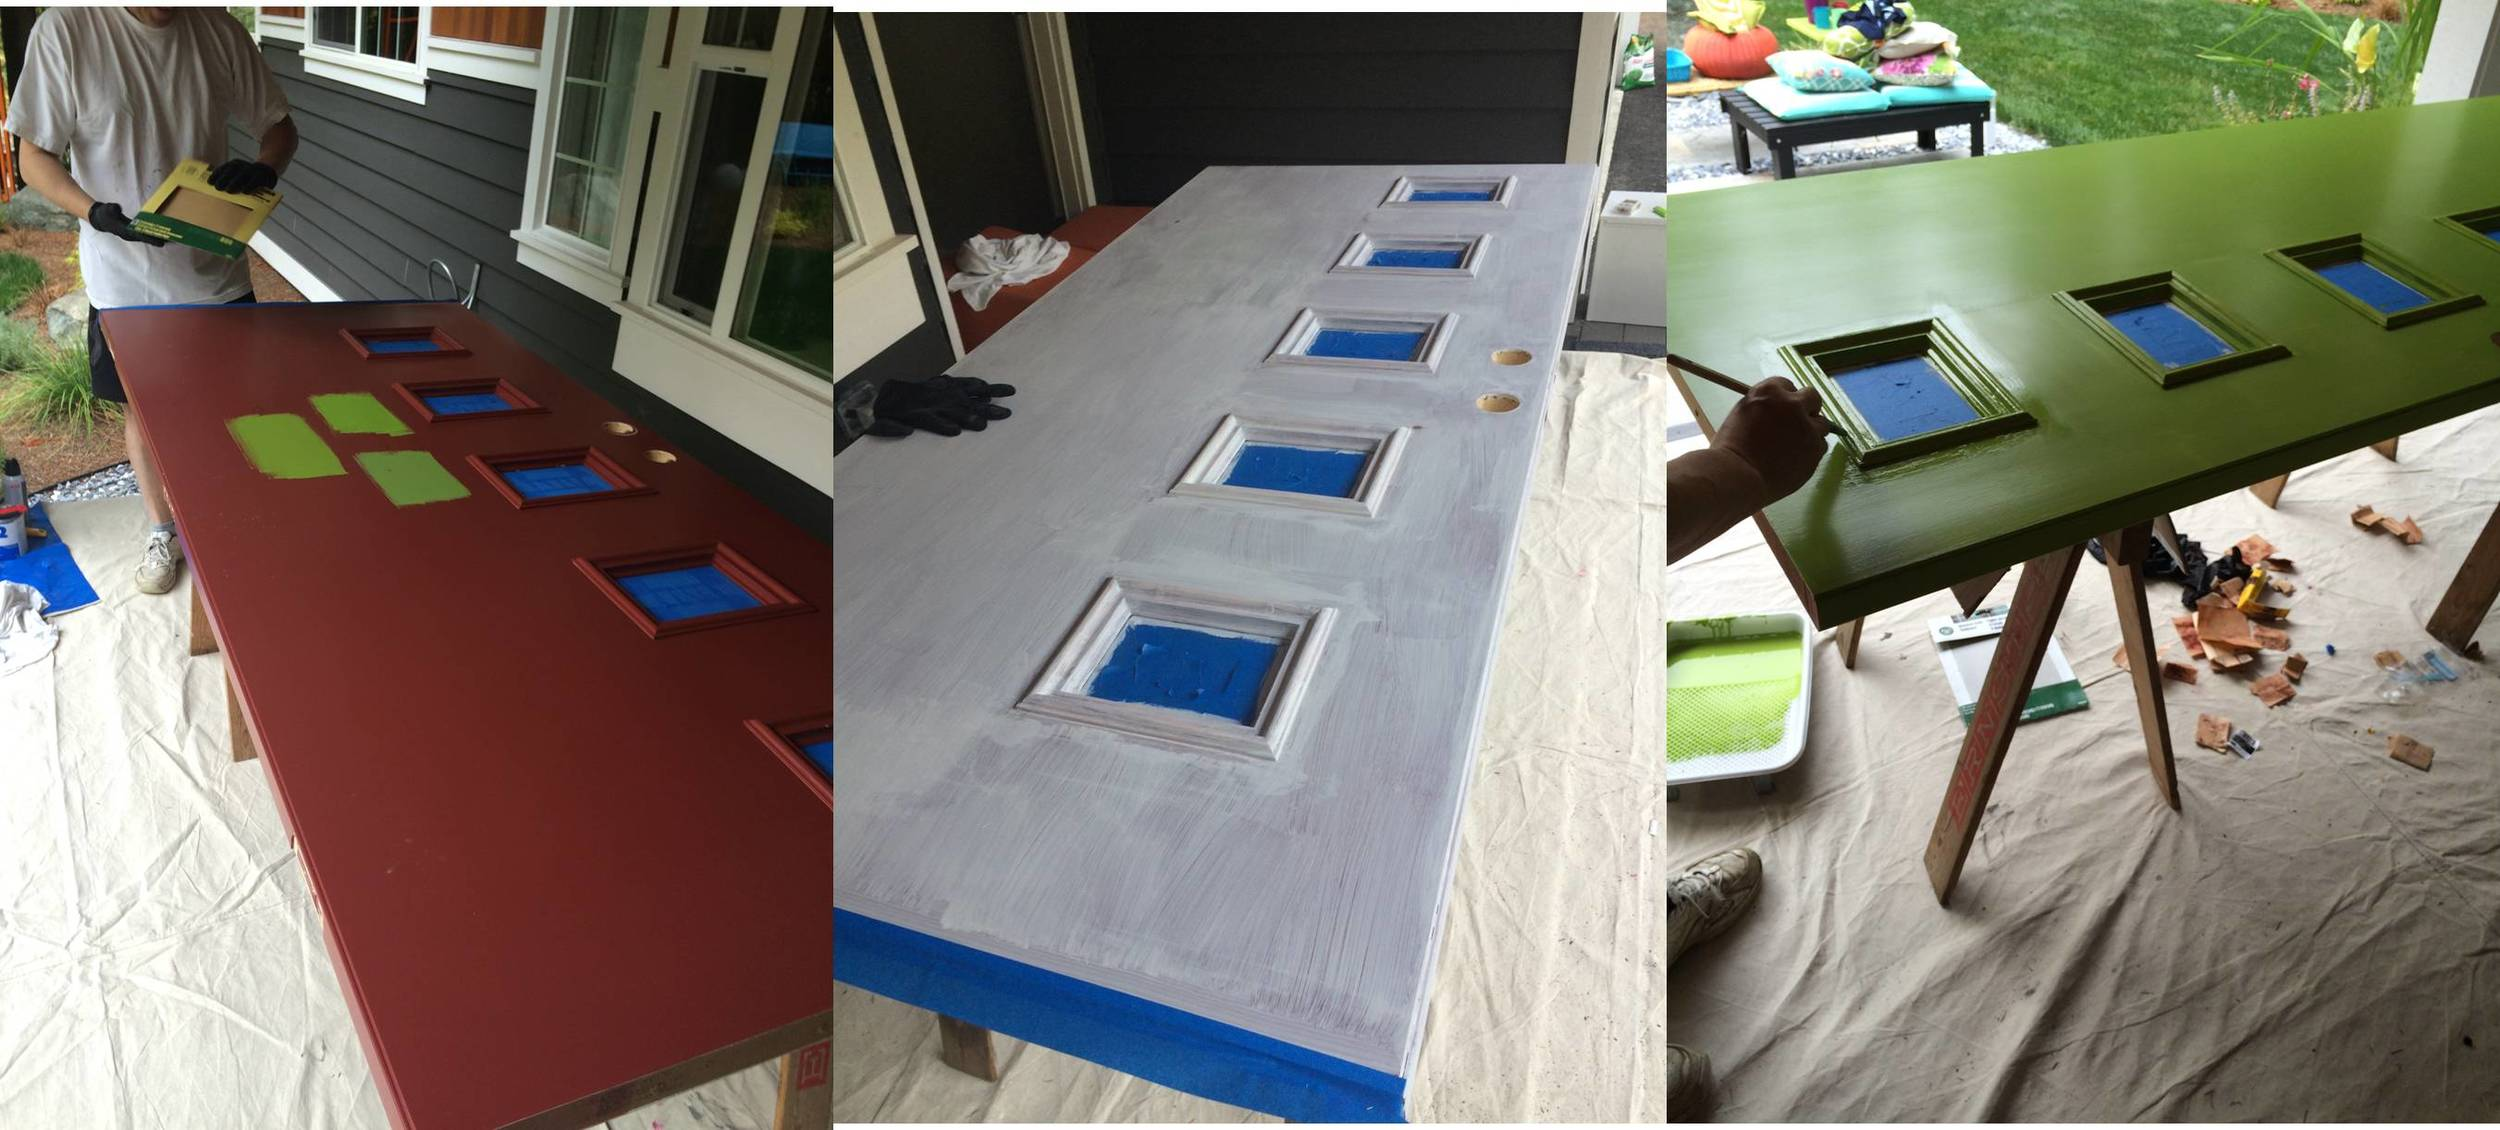 We tried three different colors,settled on Douglas Fir, then primed and painted.